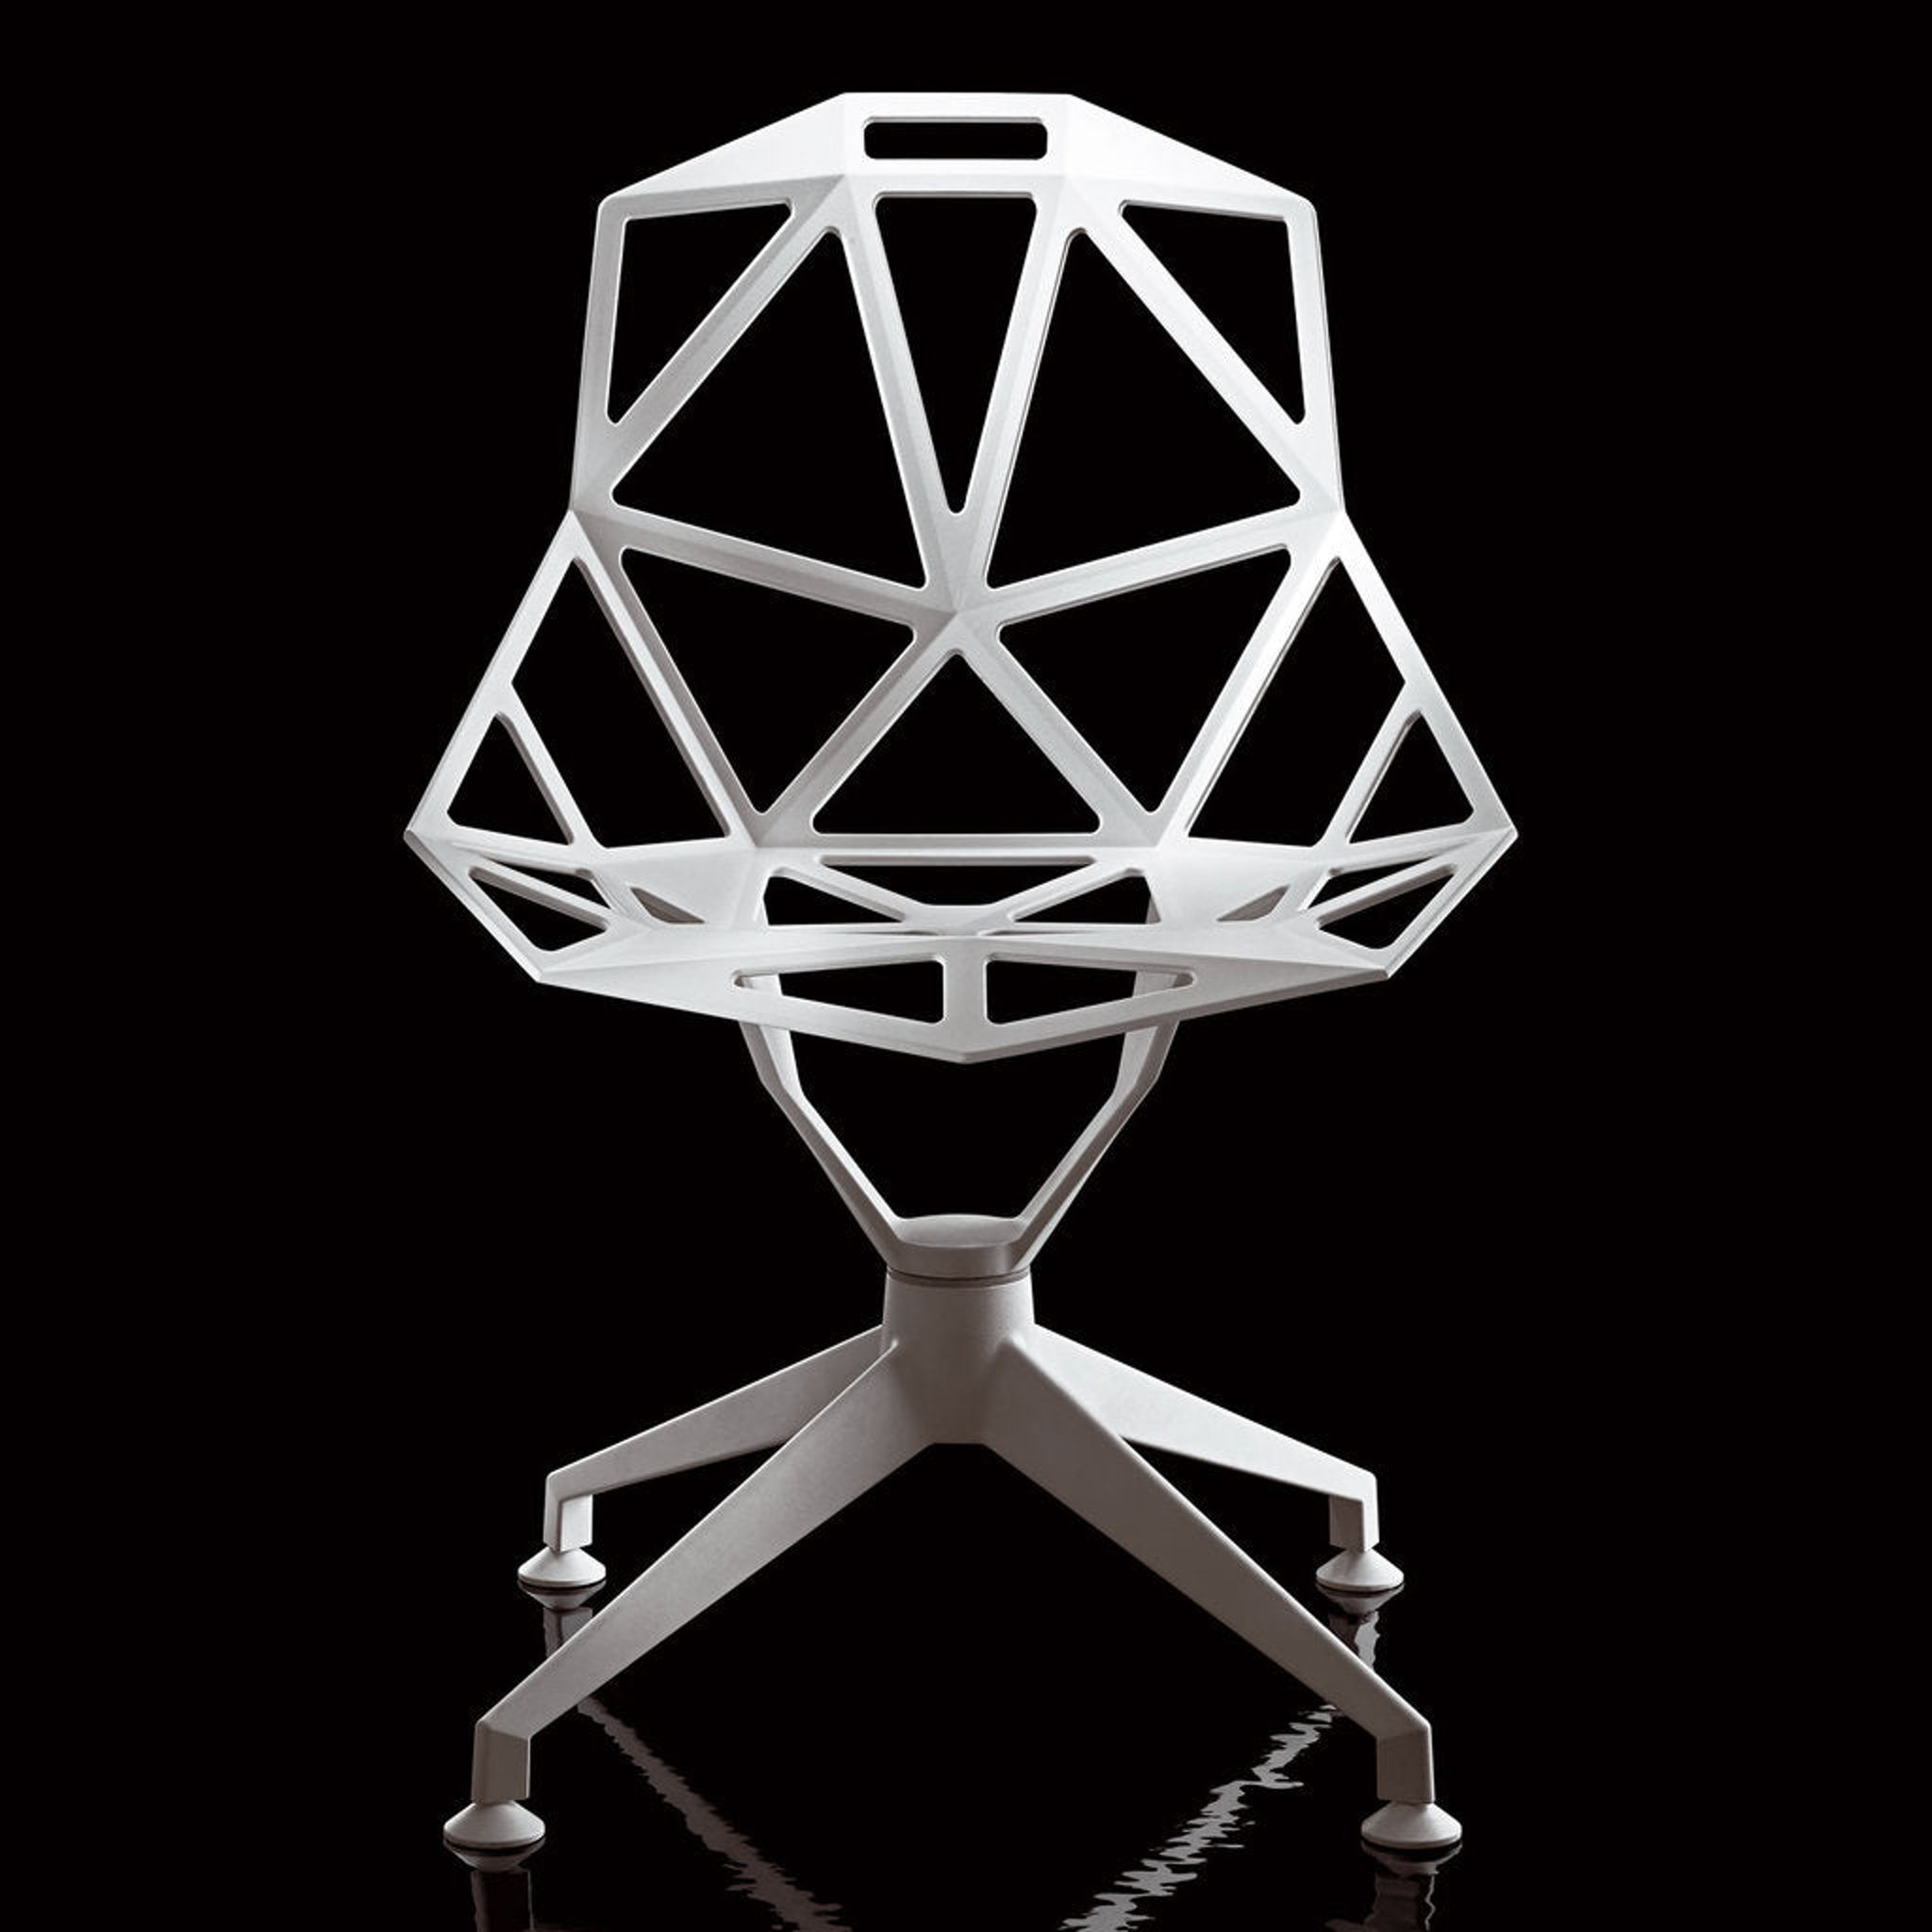 Chair One - 4 Star by Konstantin Grcic